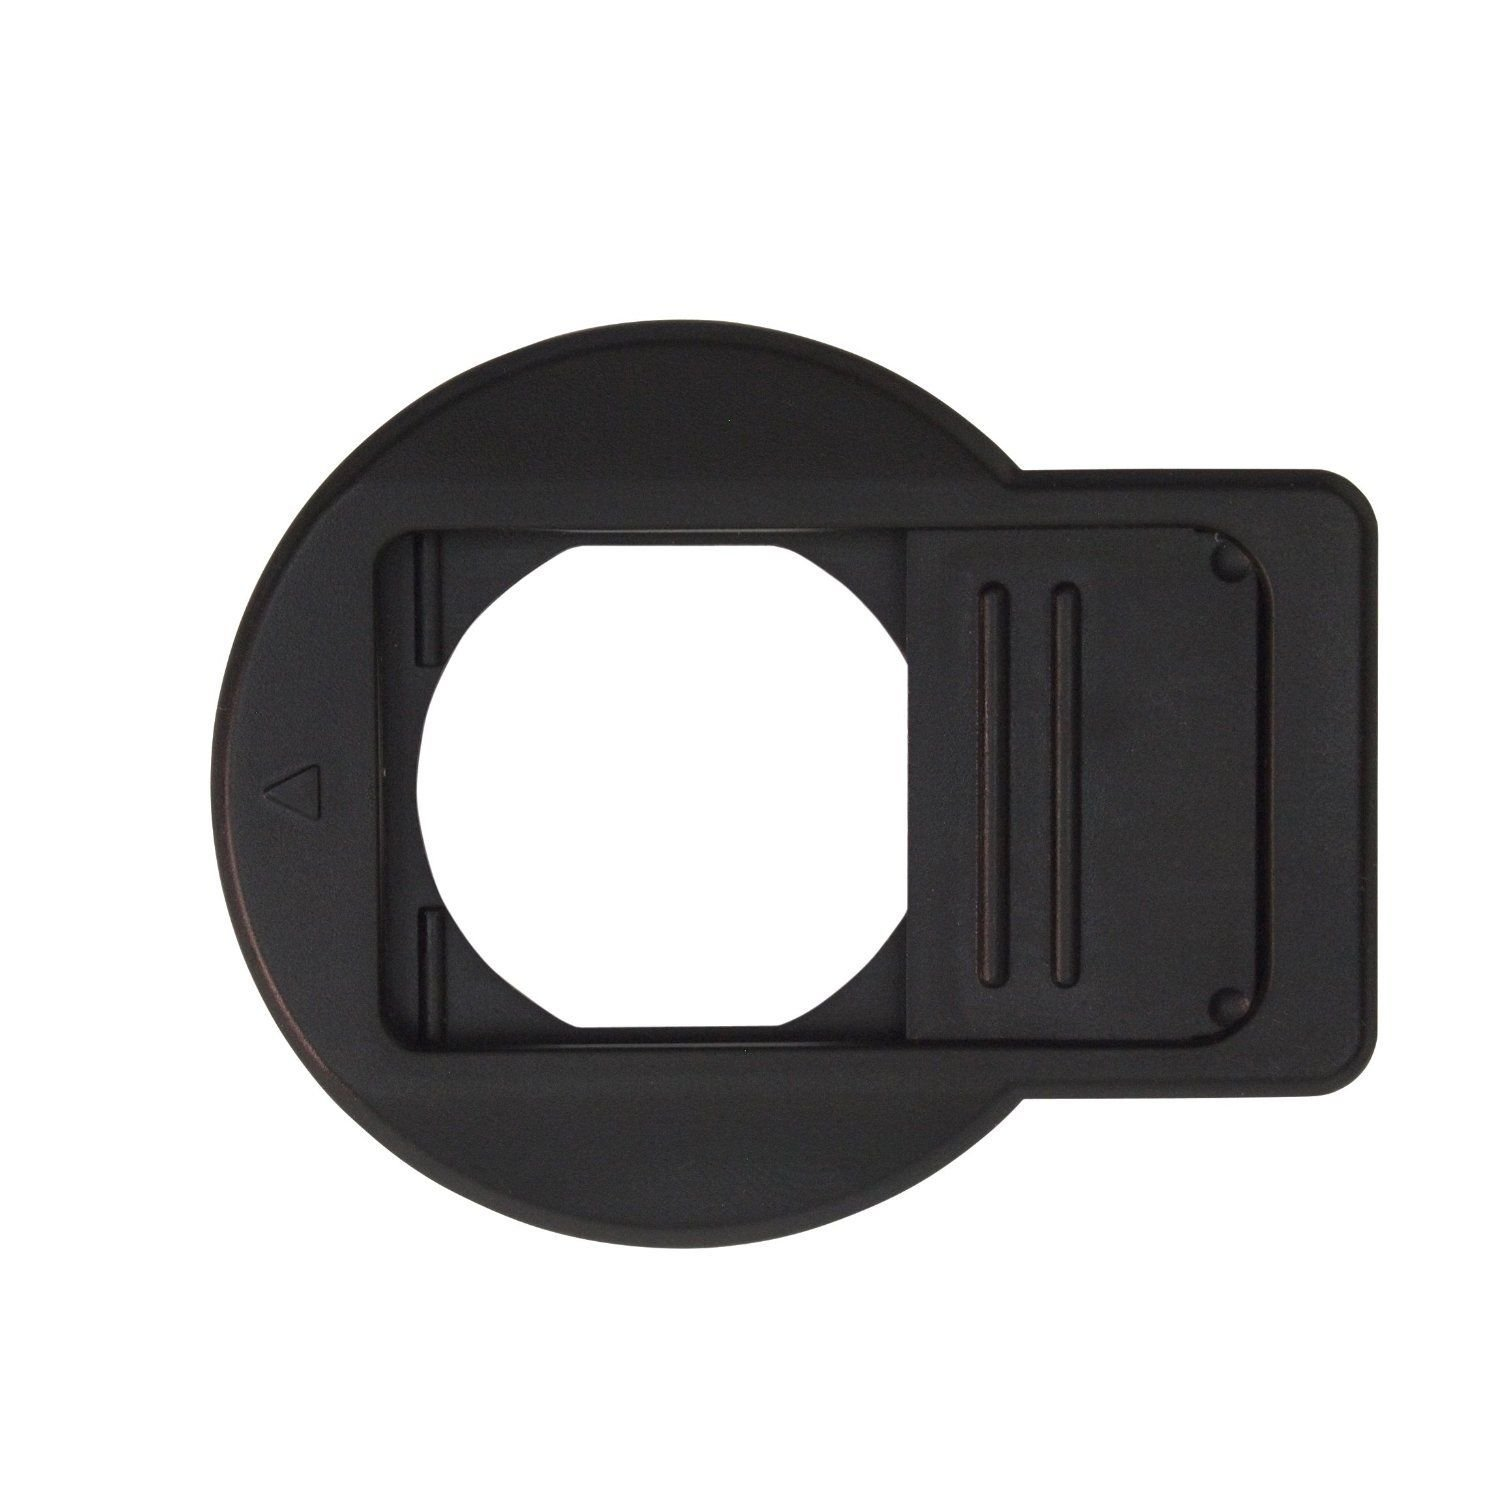 JFOTO TG-C Lens Cap Design for OLYMPUS Tough TG1/TG2/TG3/TG4/TG5, Camera Black Front Lens Cover better protection lens